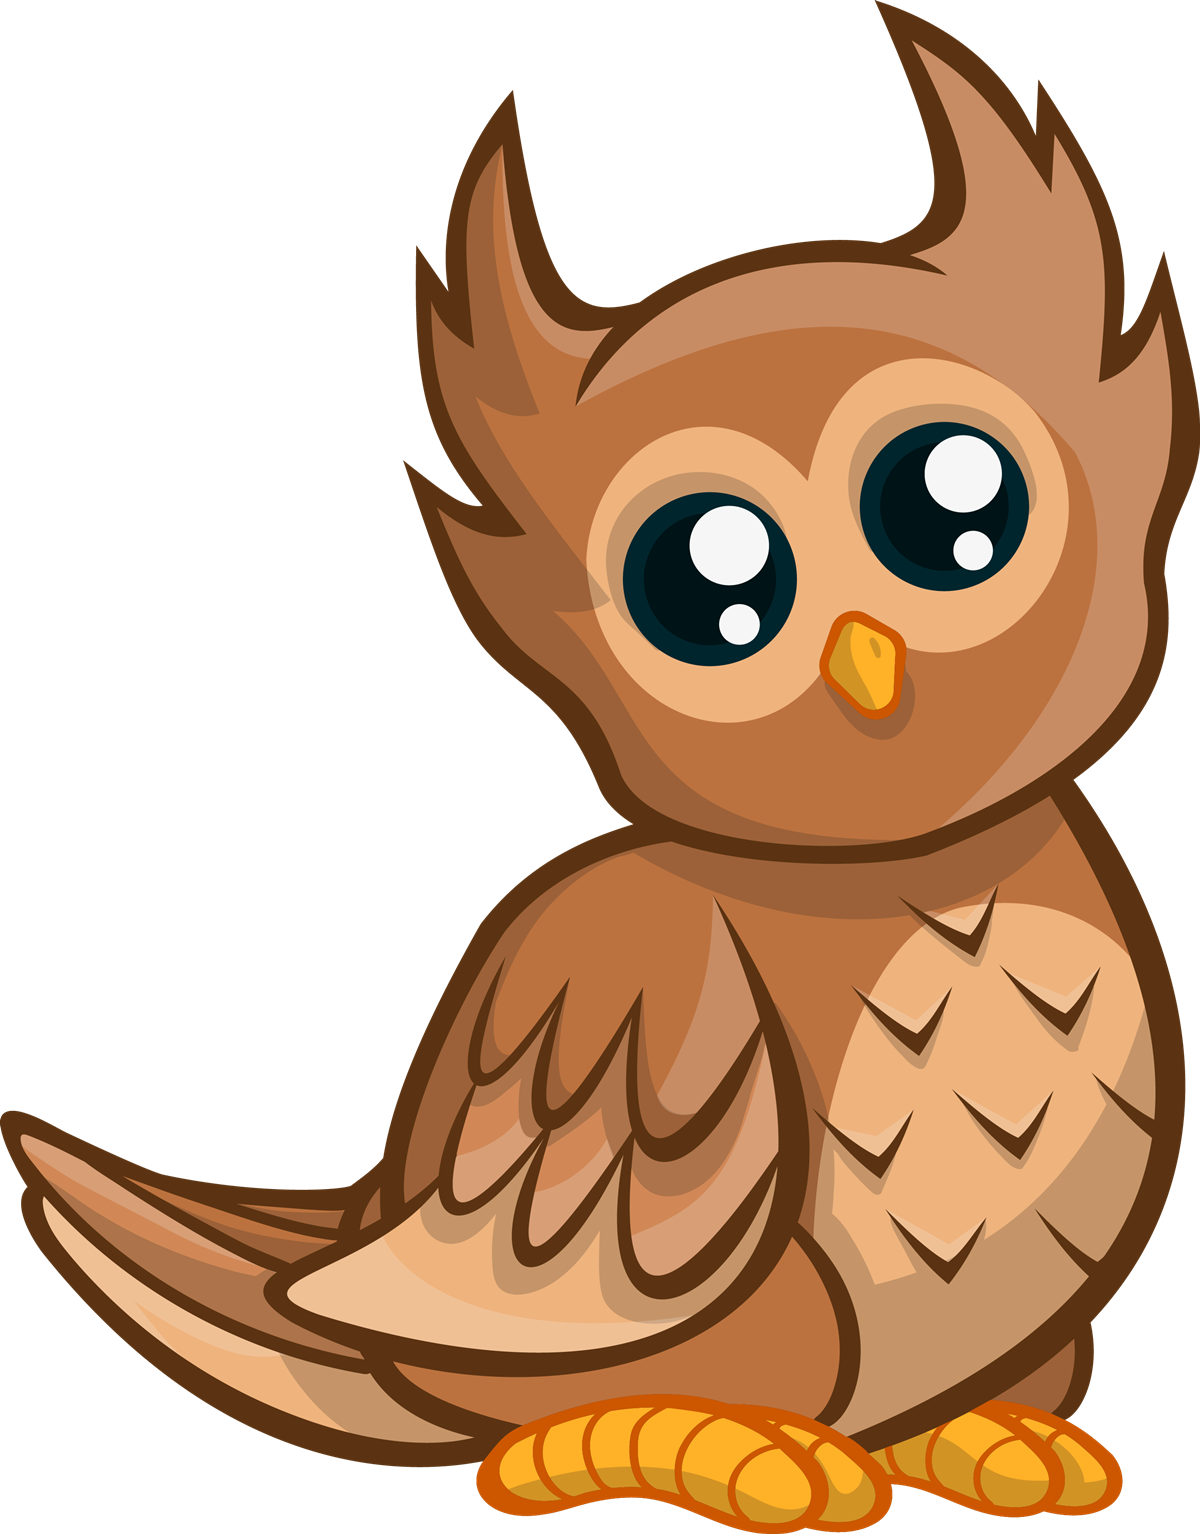 Owlet clipart #1, Download drawings